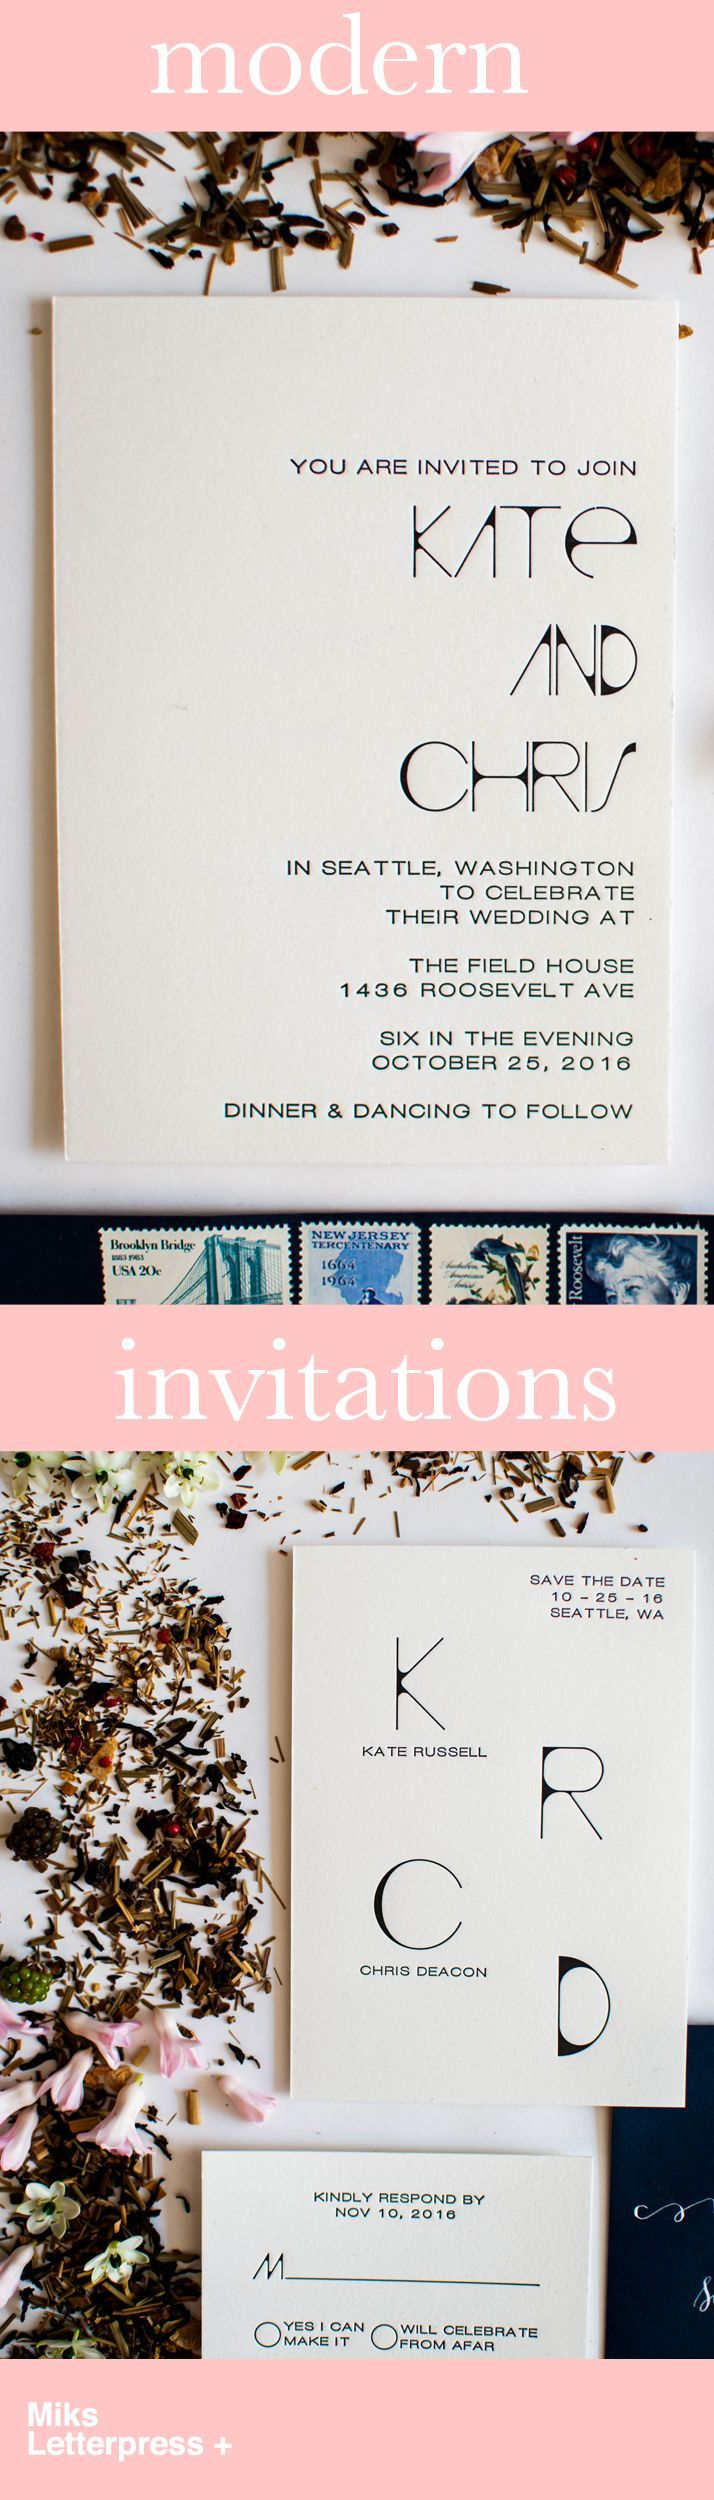 Looking for modern wedding invitations and save the date's for your special day? Take a look at the elegant, unique, simple and clean designs at Miks Letterpress + Options include letterpress, gold foil and water color invitations